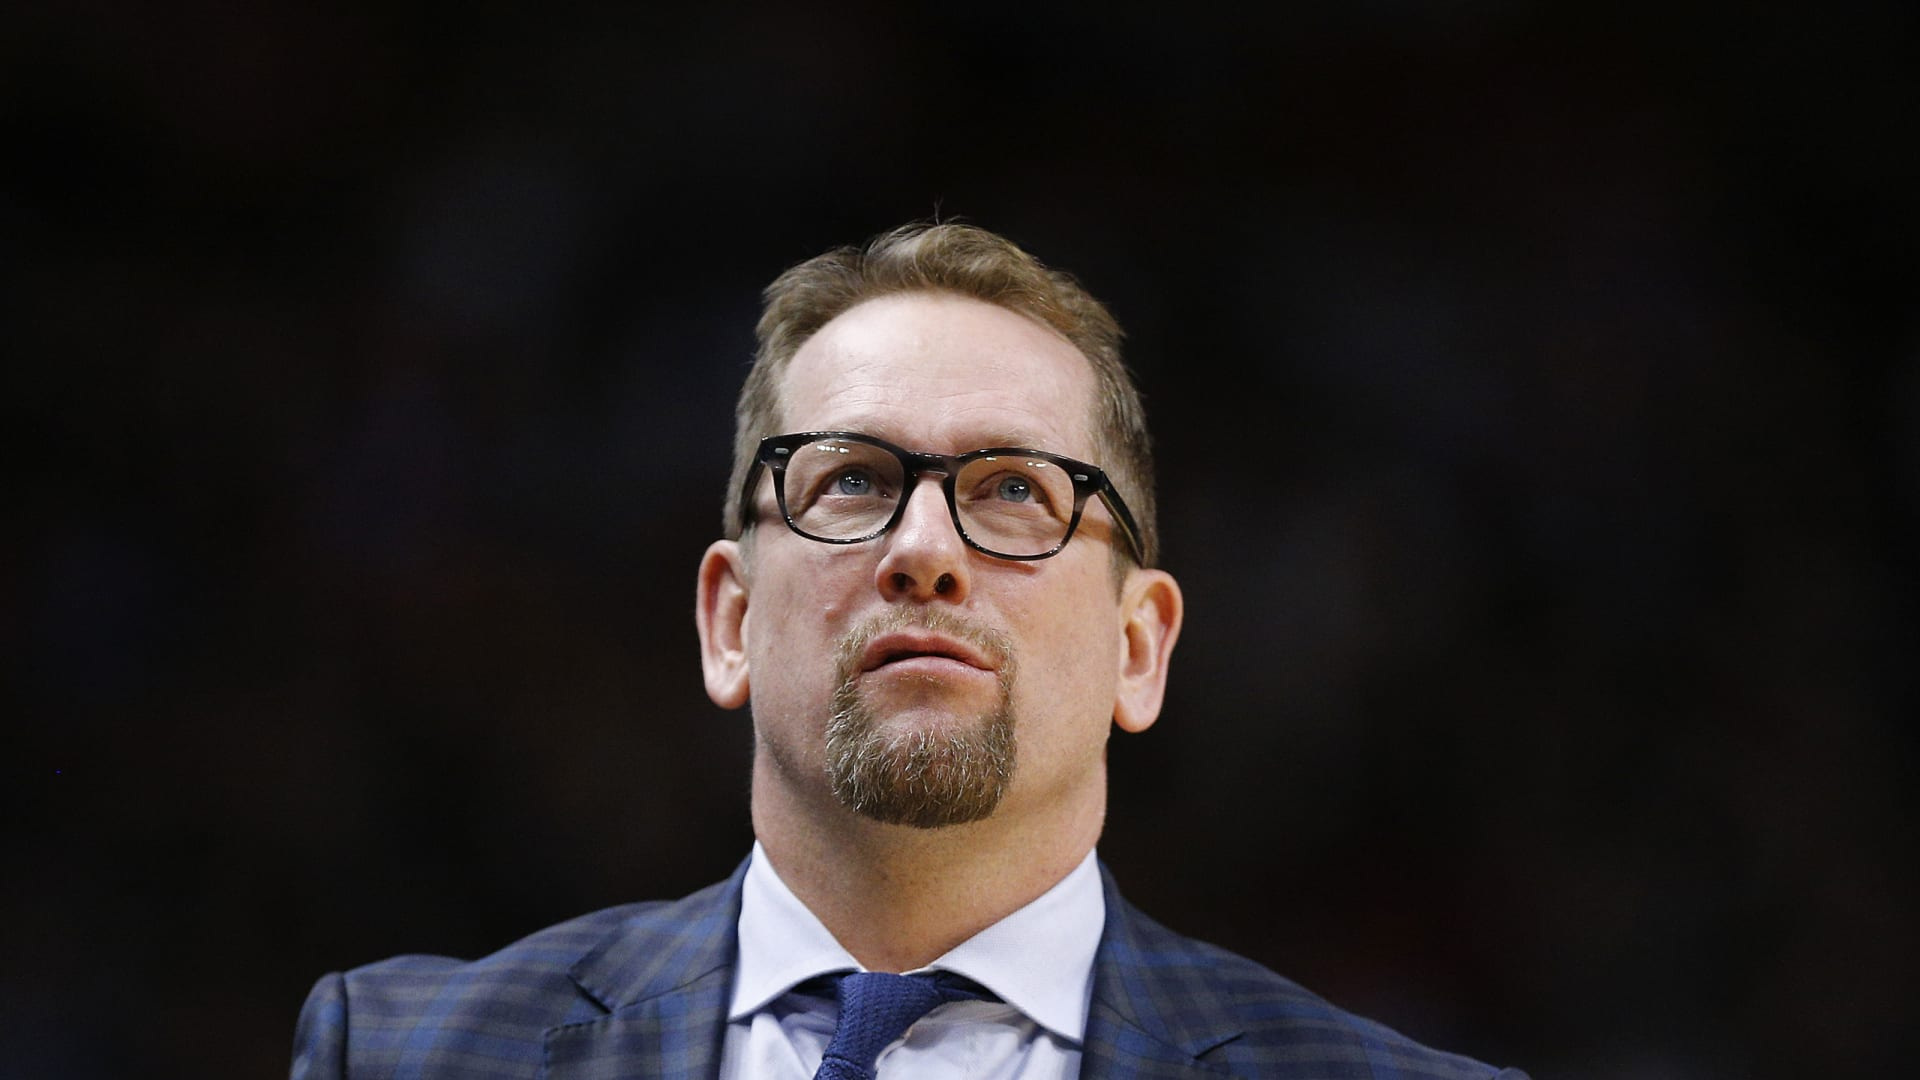 The Toronto Raptors don't have a superstar, but they do have Nick Nurse